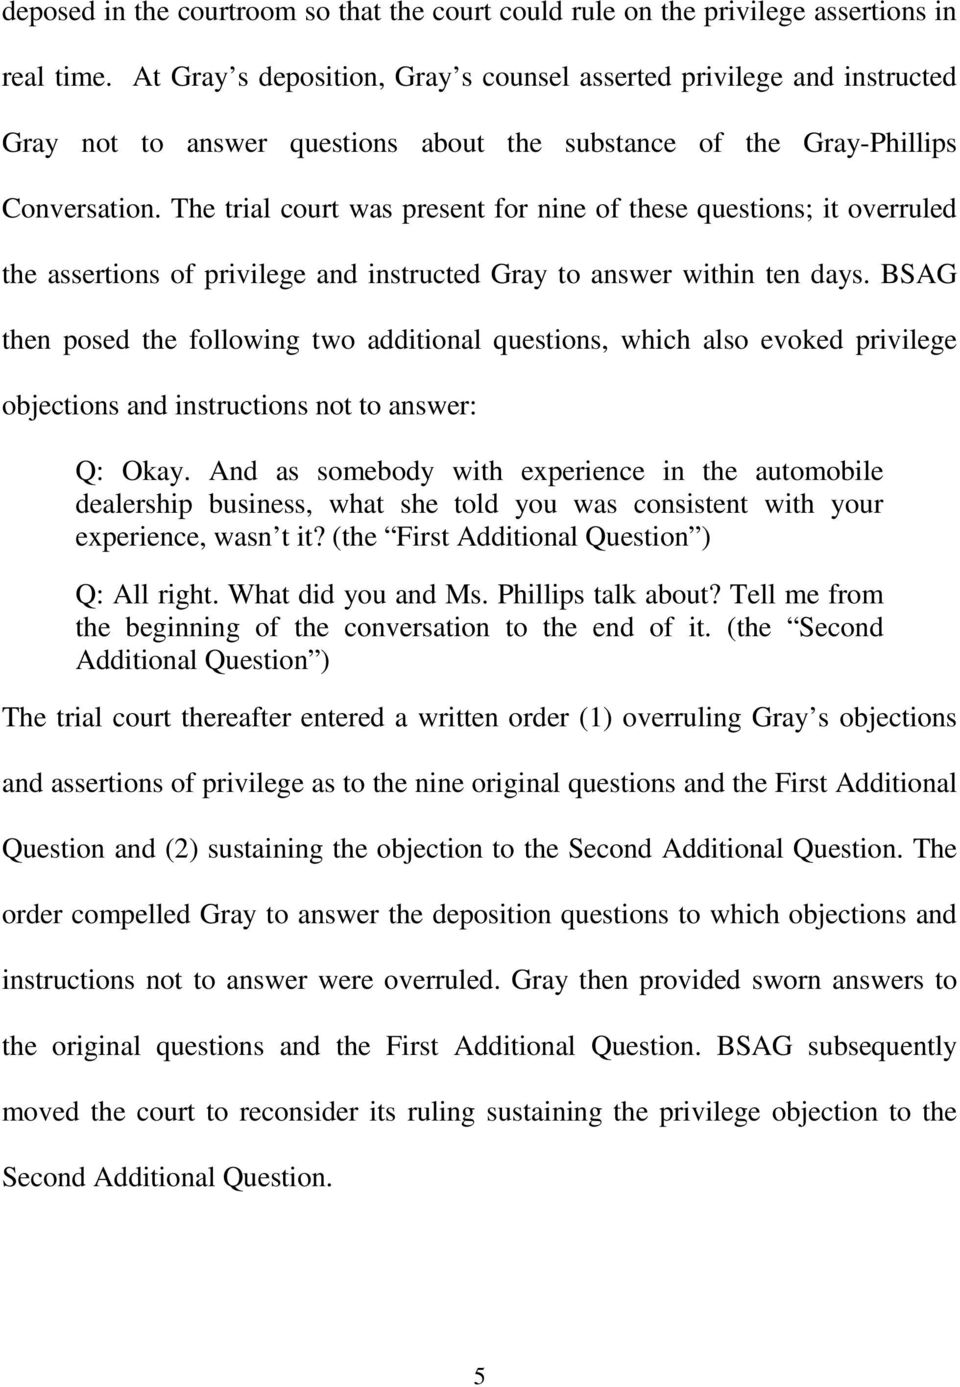 The trial court was present for nine of these questions; it overruled the assertions of privilege and instructed Gray to answer within ten days.